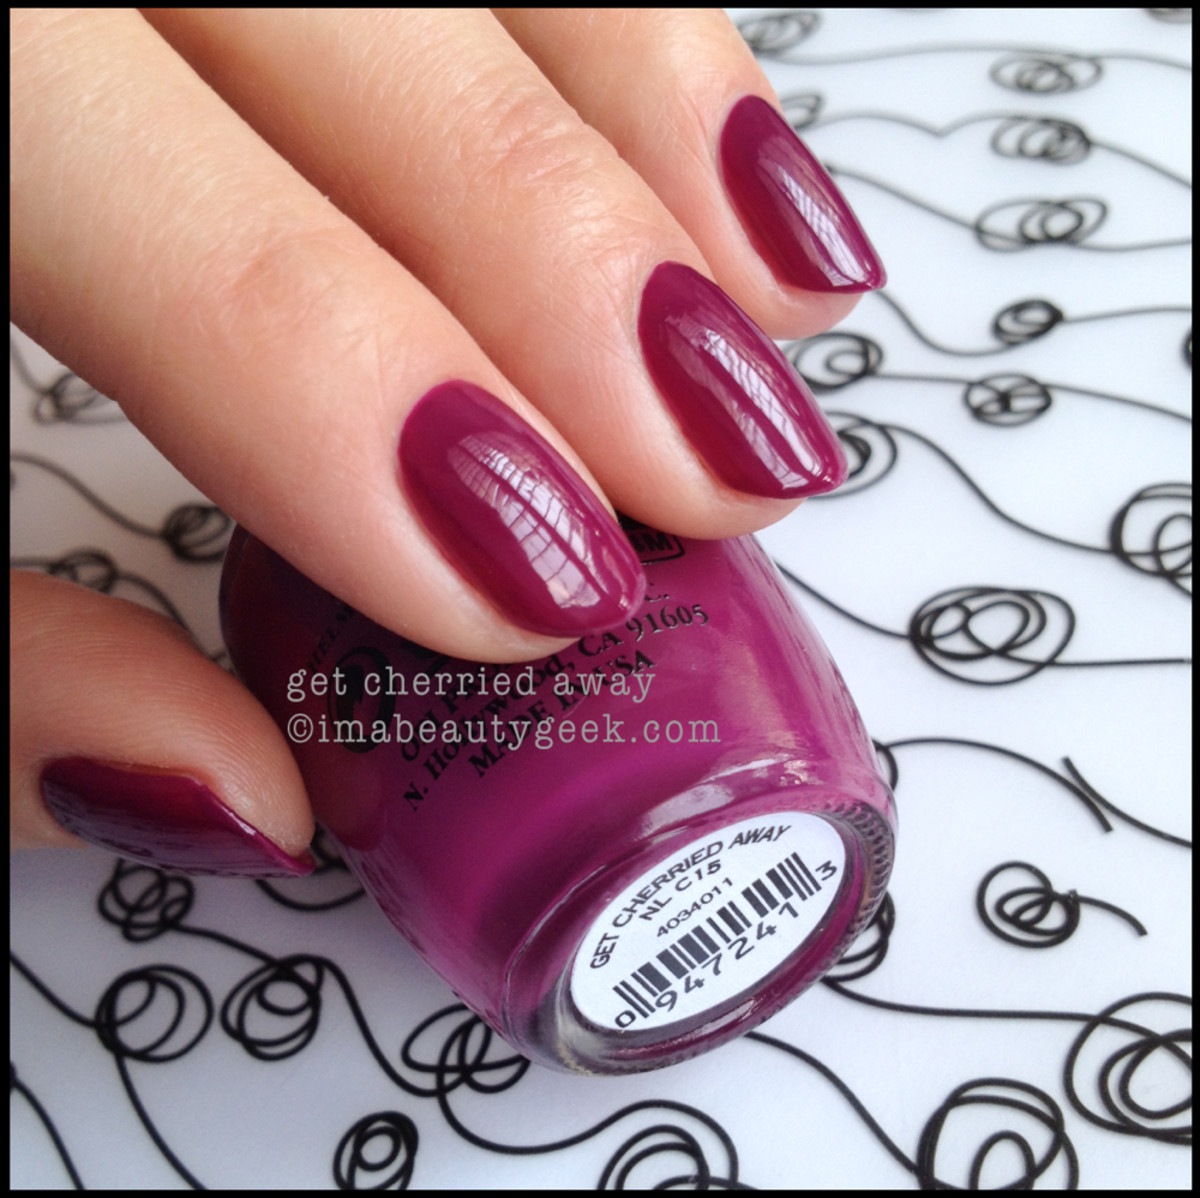 OPI Get Cherried Away OPI Coca Cola 2014